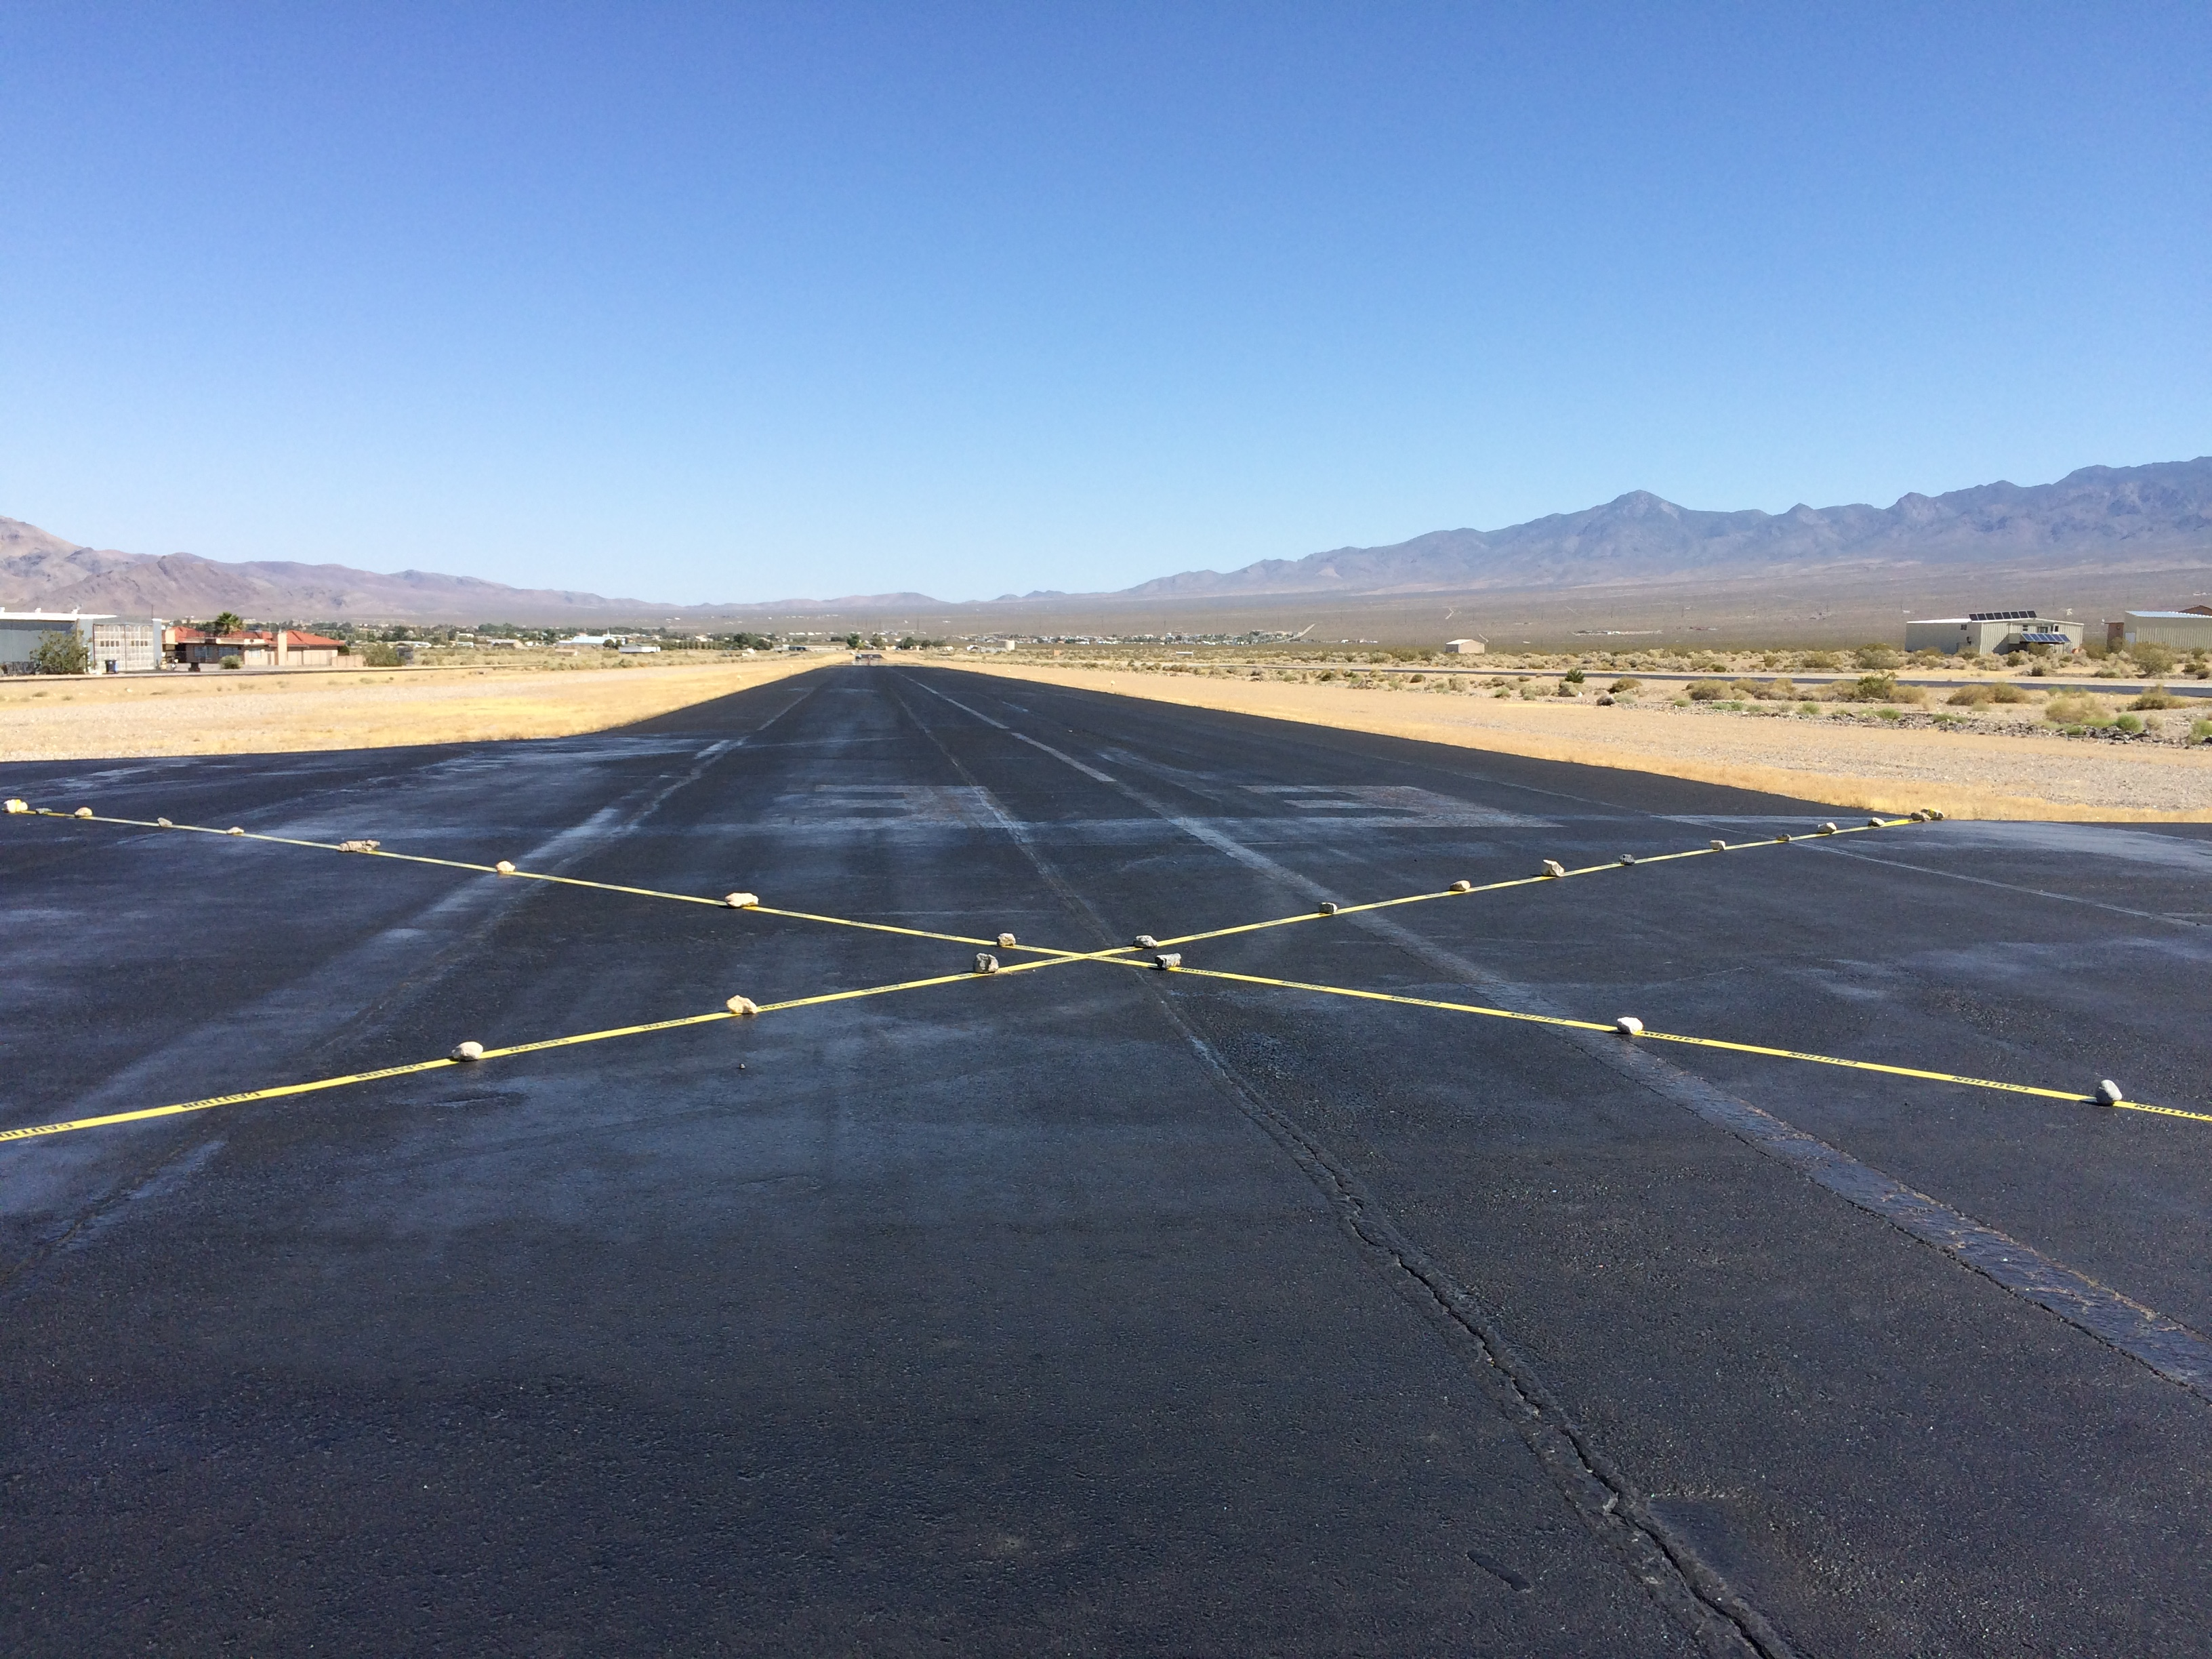 Runway closed for striping